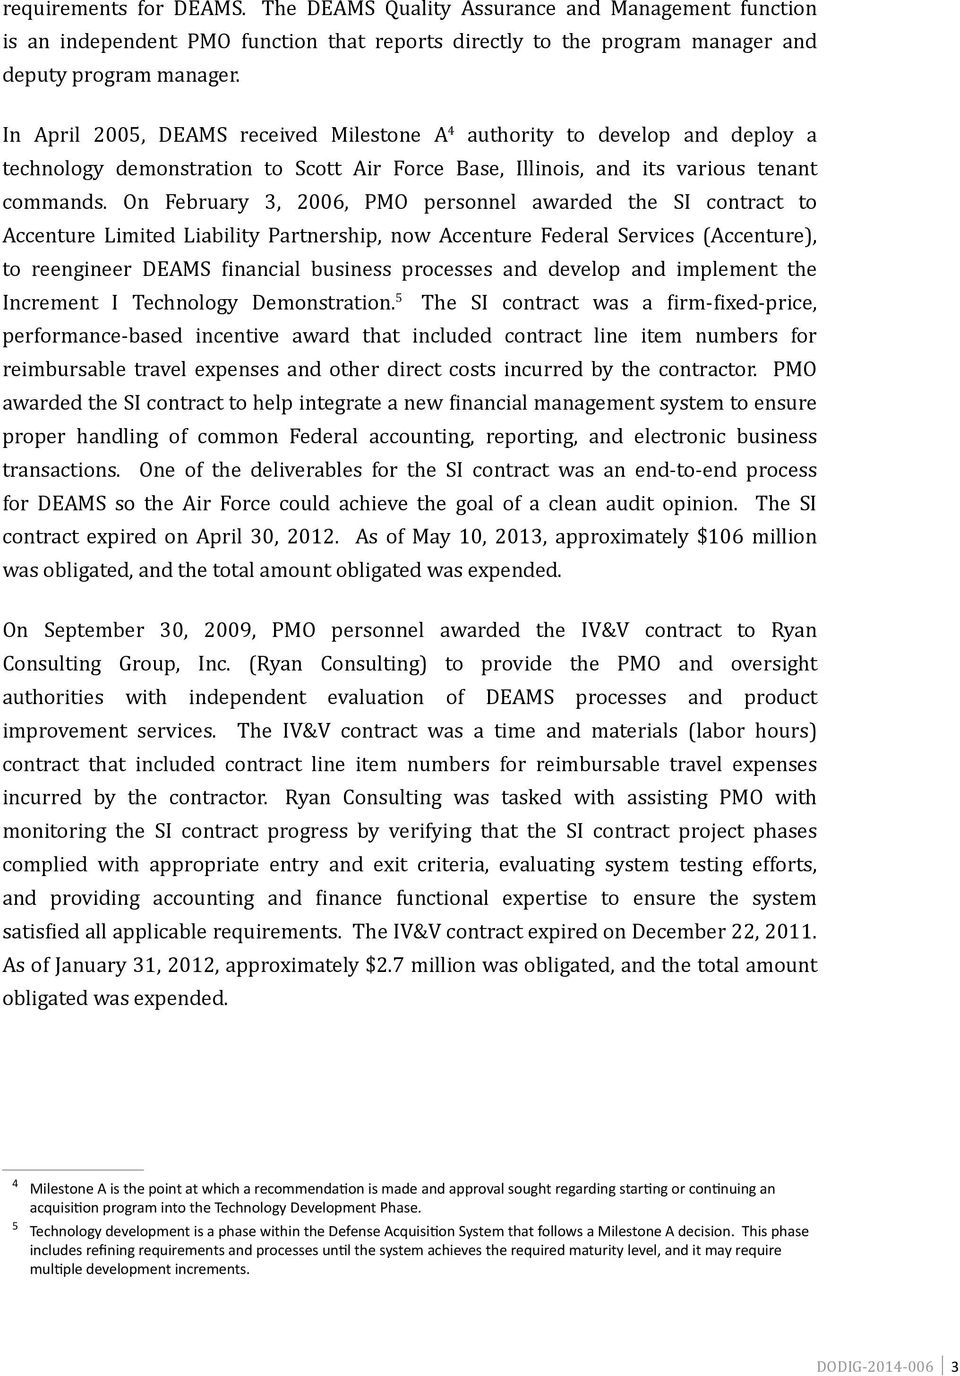 On February 3, 2006, PMO personnel awarded the SI contract to Accenture Limited Liability Partnership, now Accenture Federal Services (Accenture), to reengineer DEAMS financial business processes and